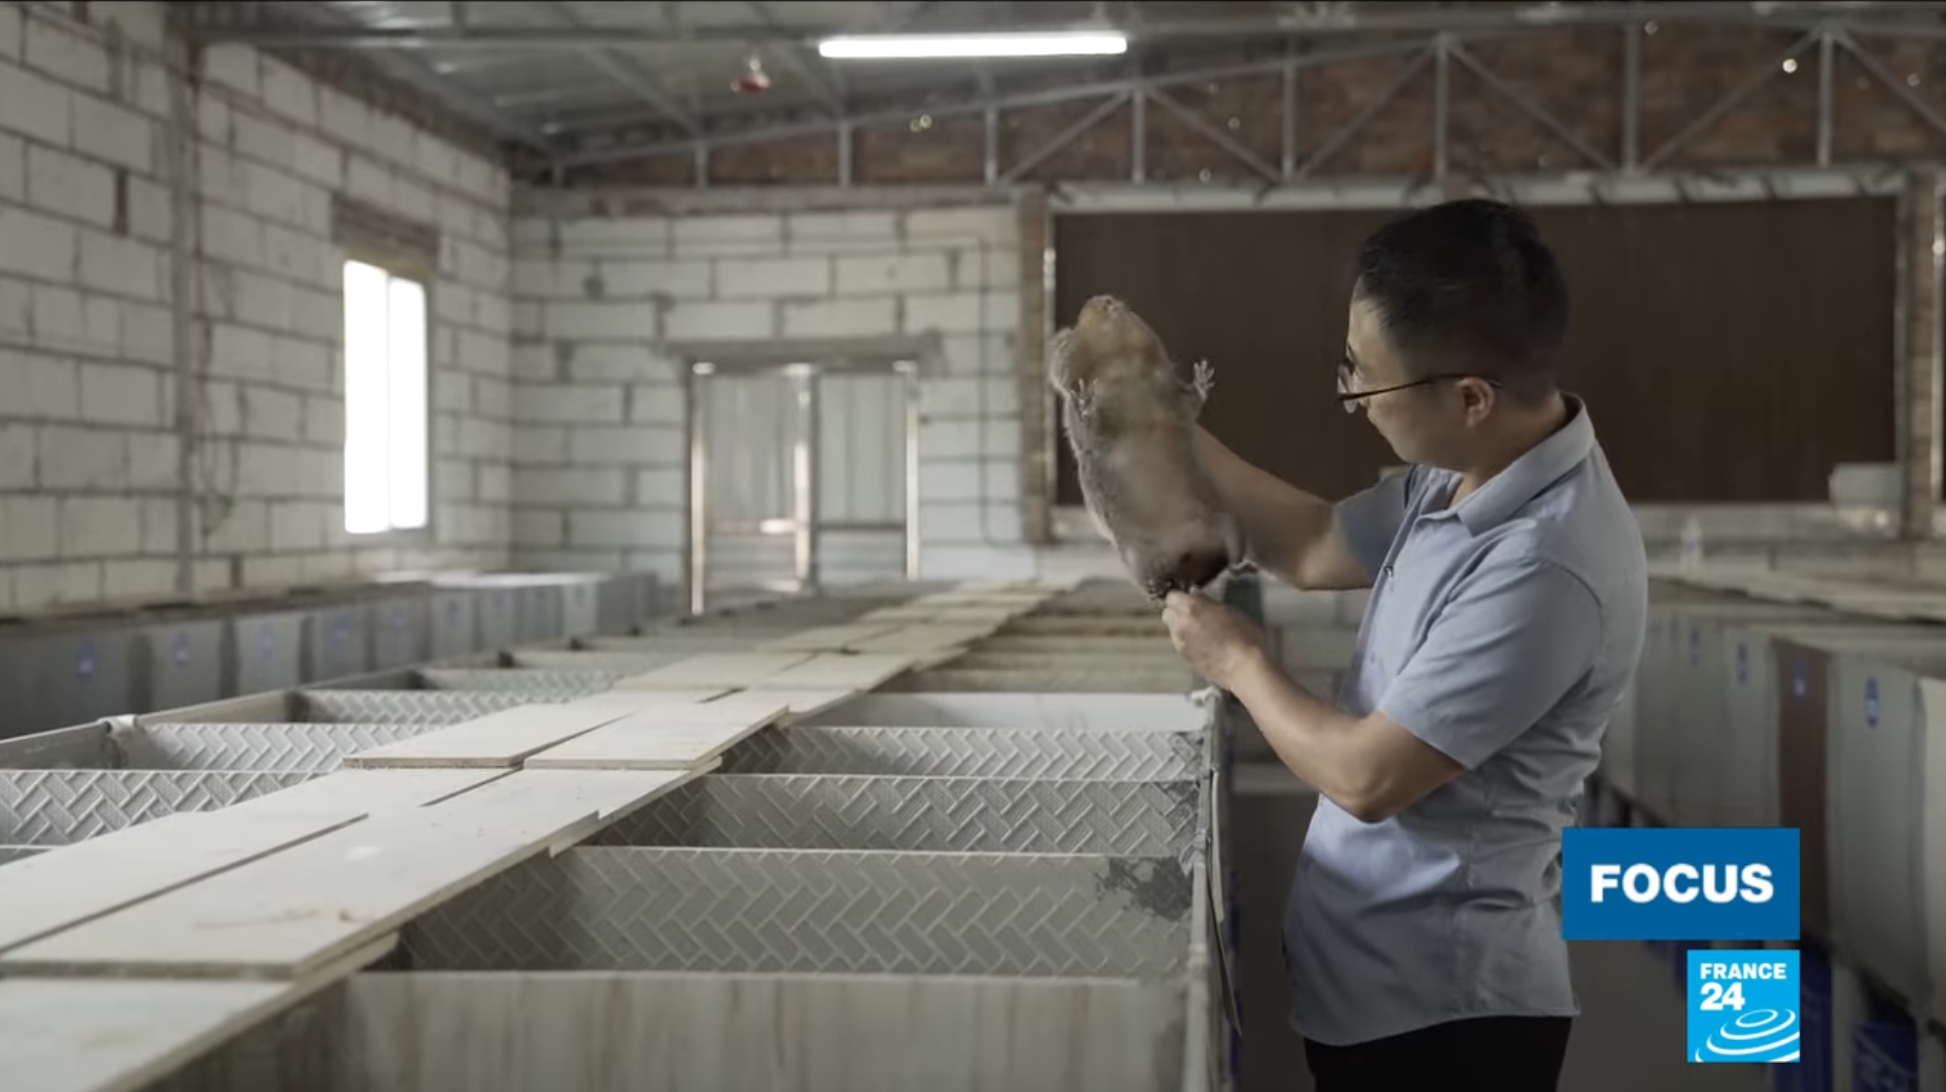 One bamboo rat breeder in China laments the end to the sale of wild animals.